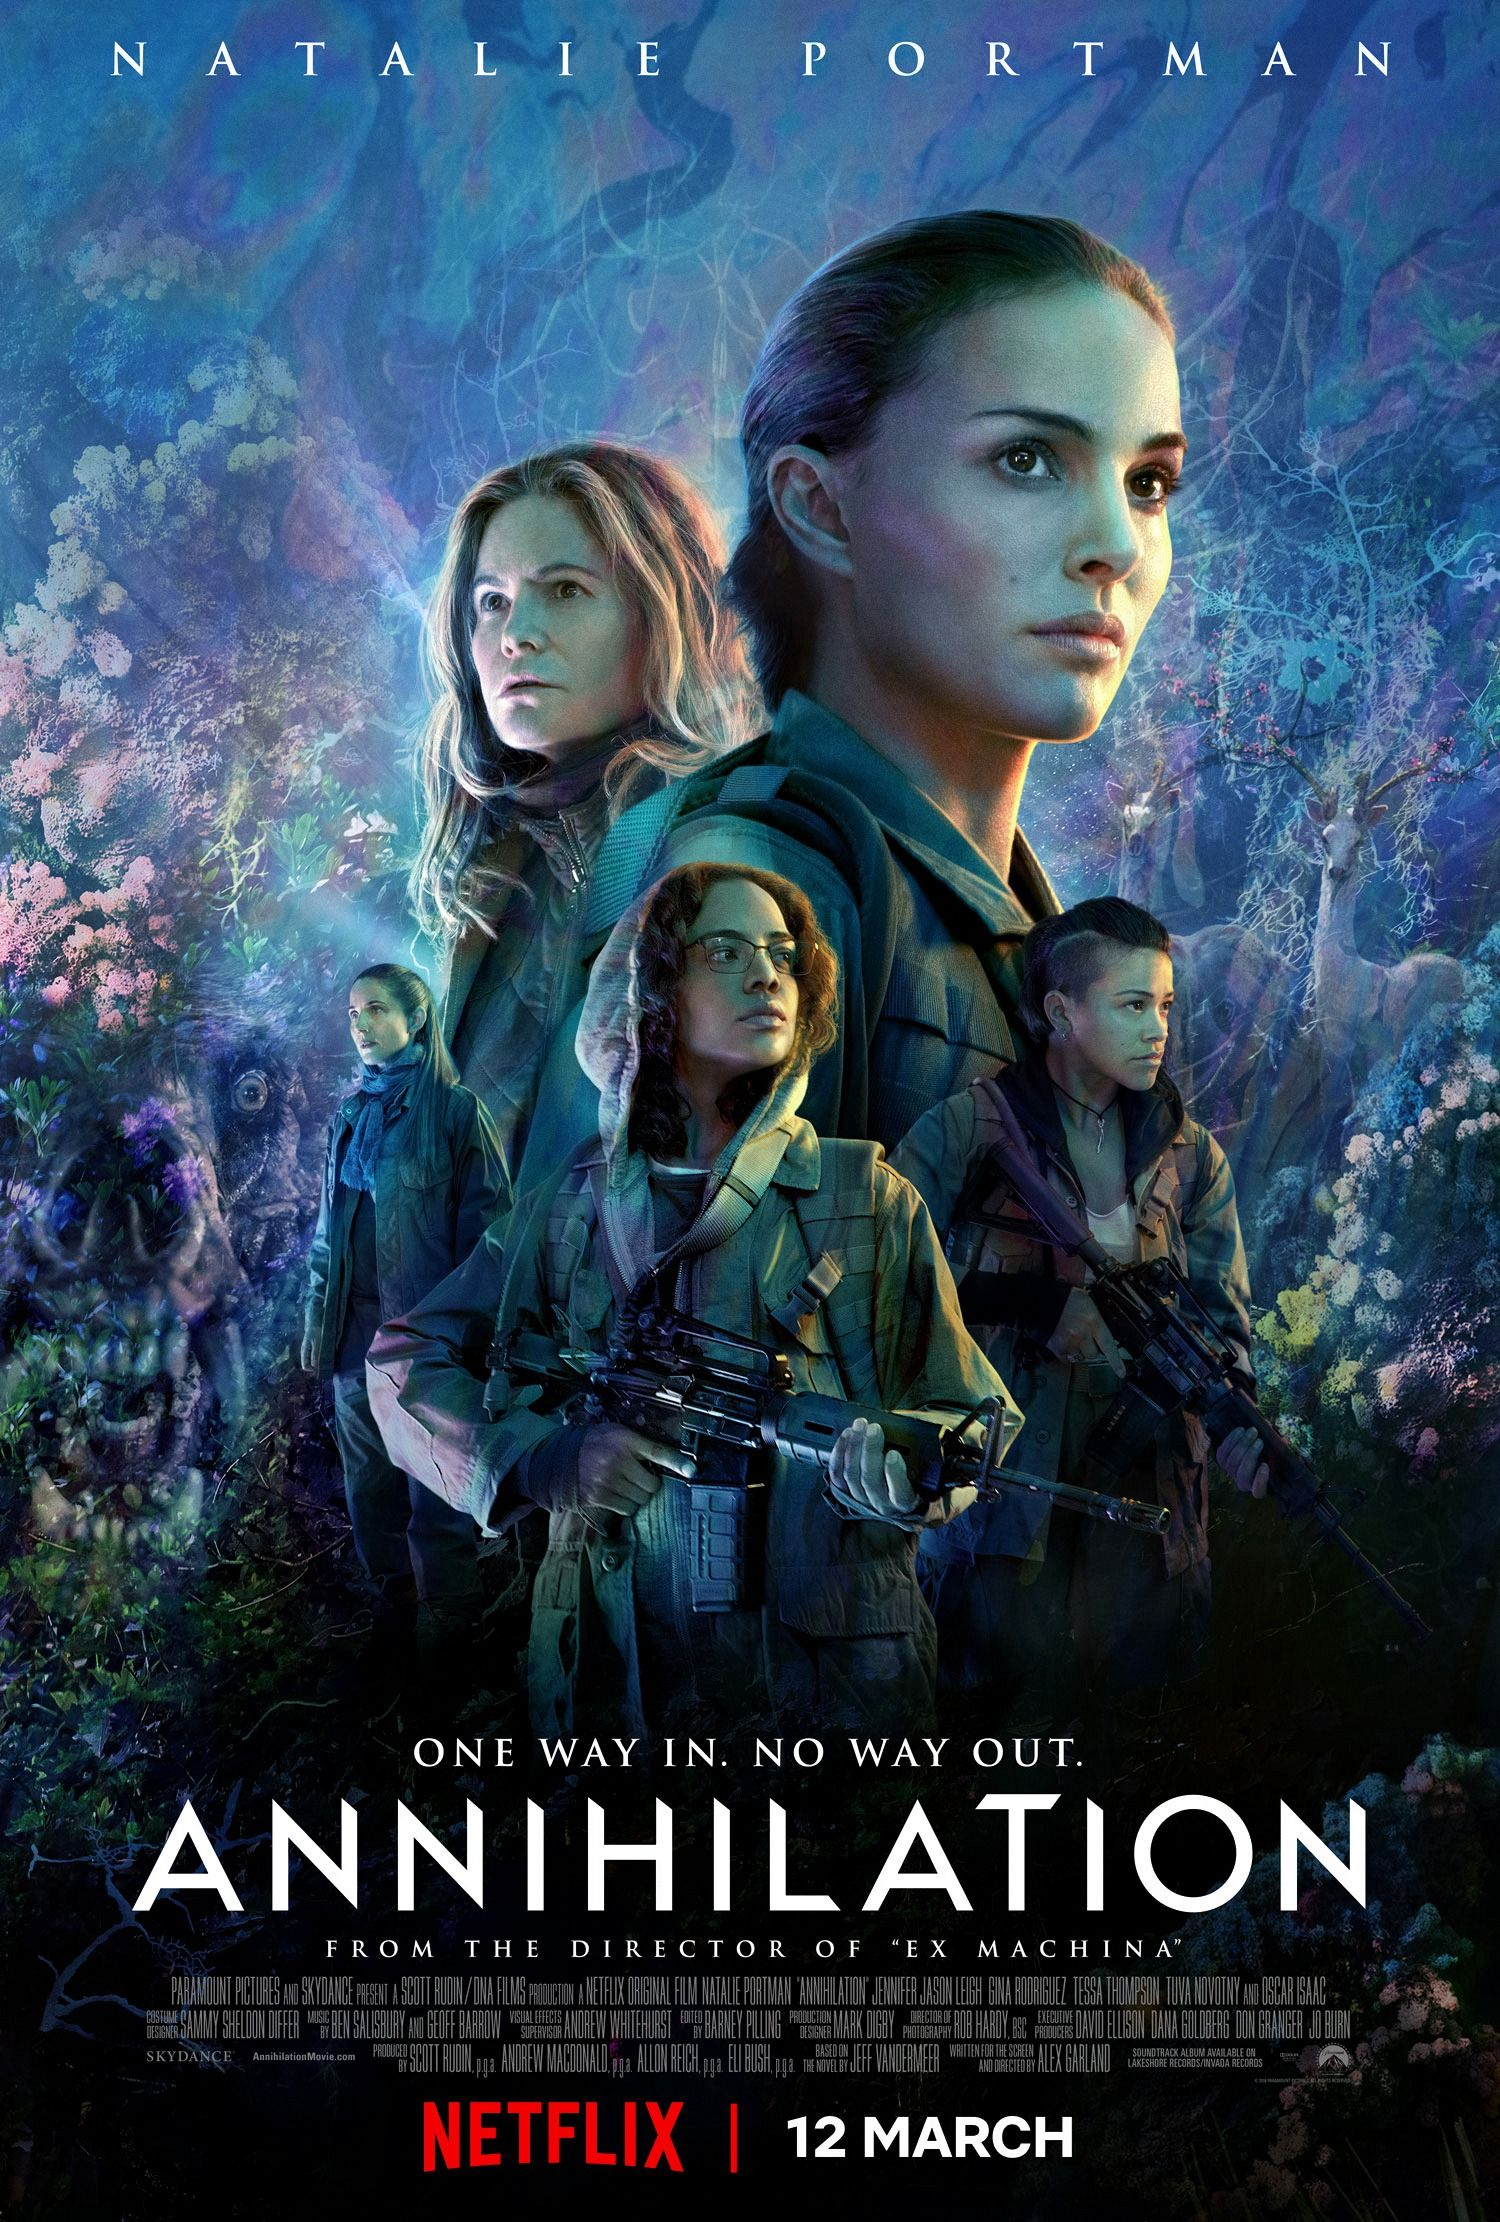 Annihilation Movie In 2019 2018 Movies Annihilation Movie Full